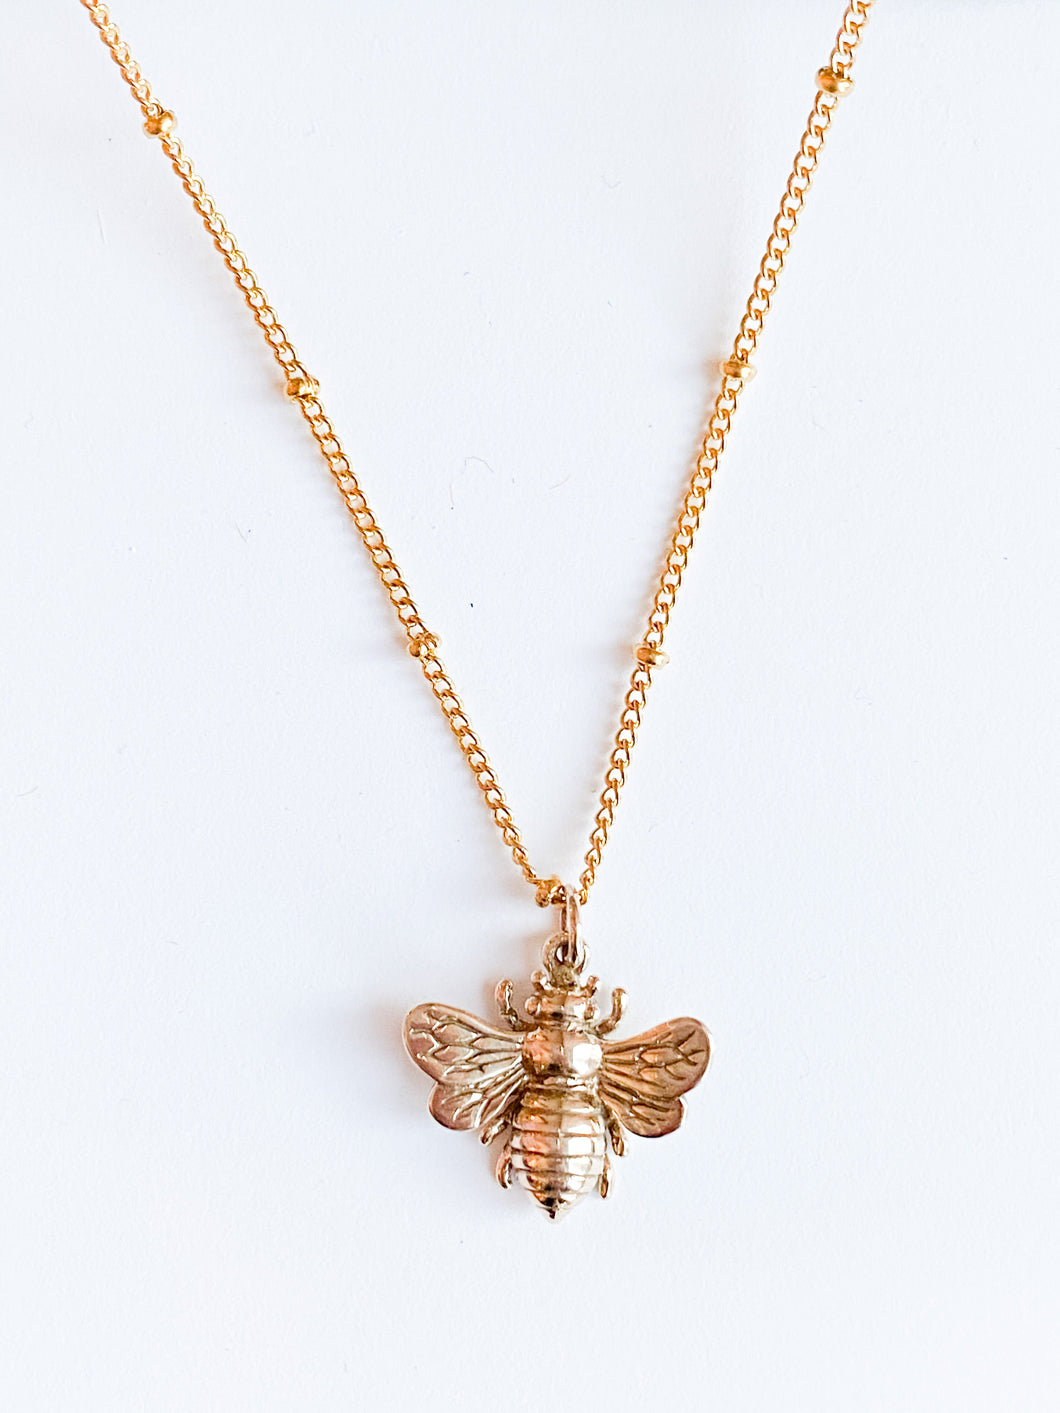 Honey Bee Necklace - Large